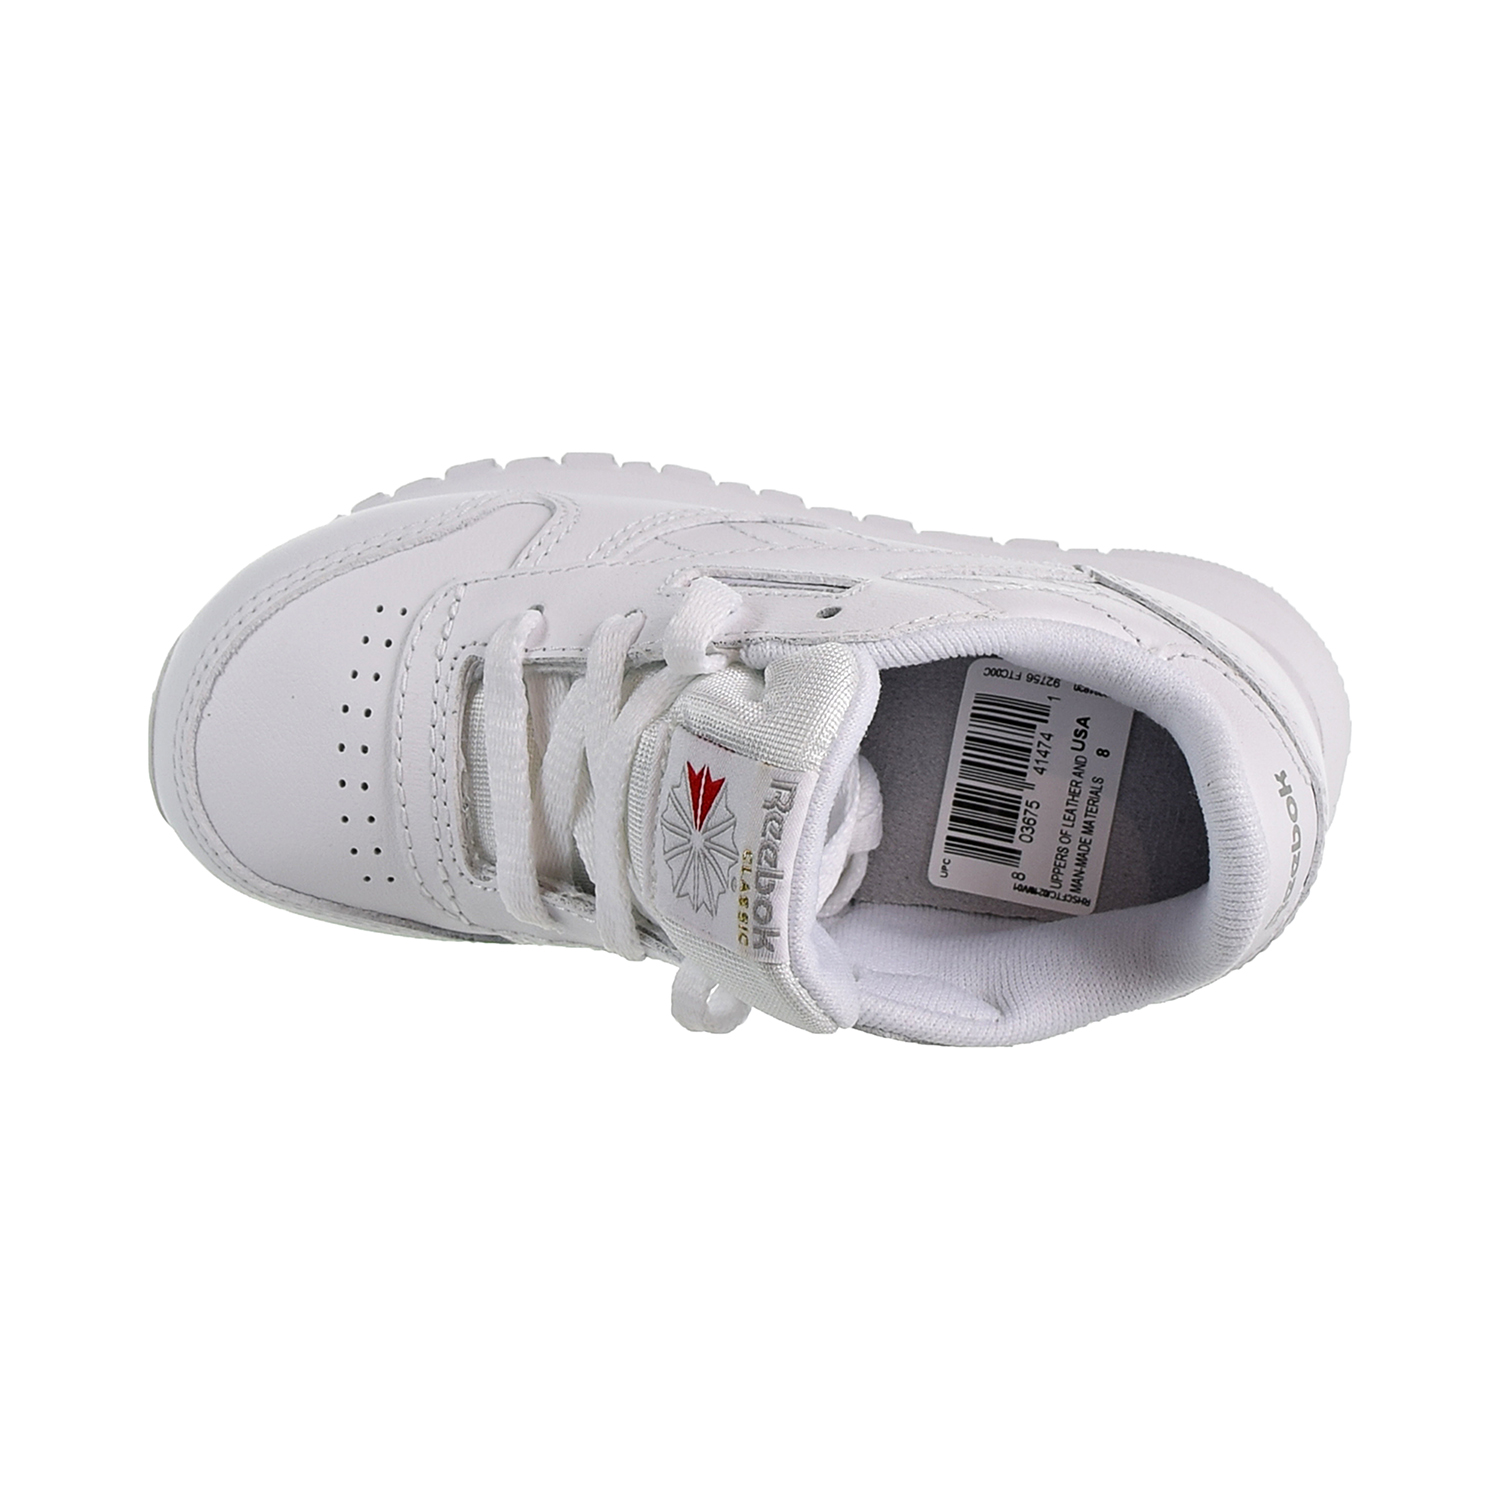 2d71a01a4c8 Reebok Classic Leather Toddler s Shoes White Light Grey 92756